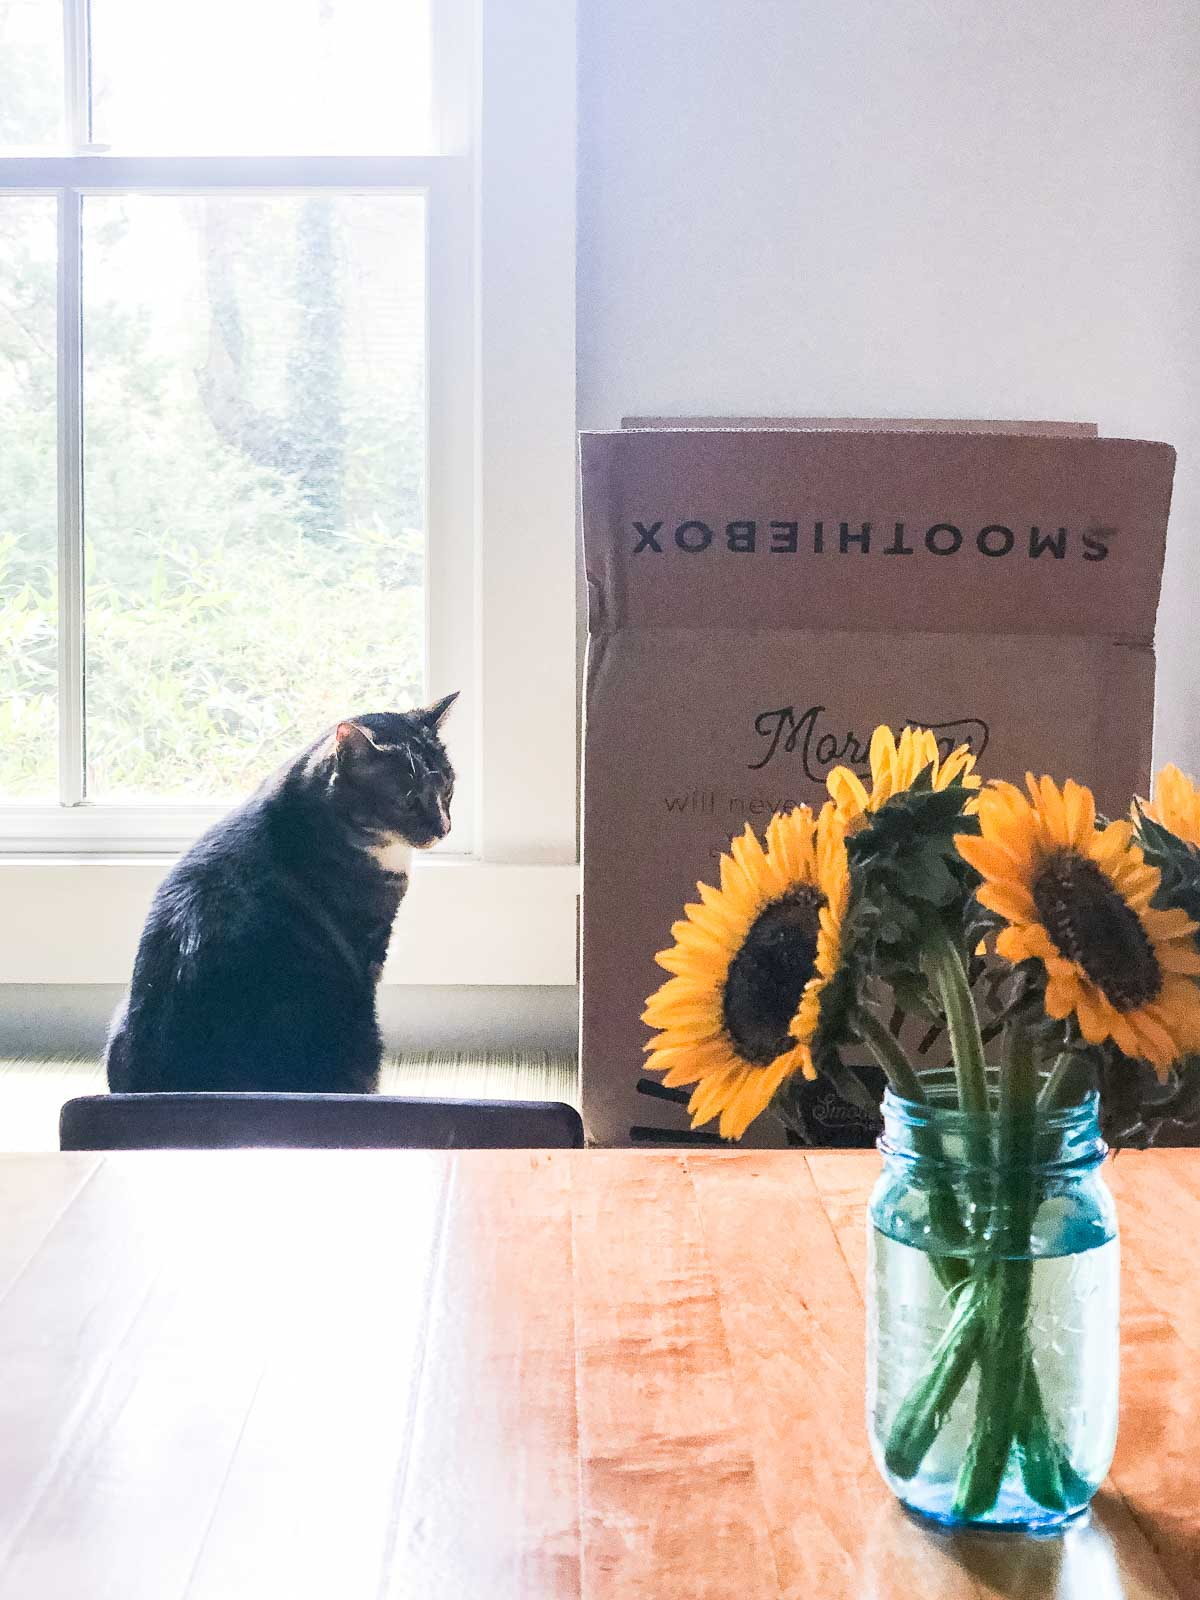 Sunflowers with smoothie box and a cat in the background